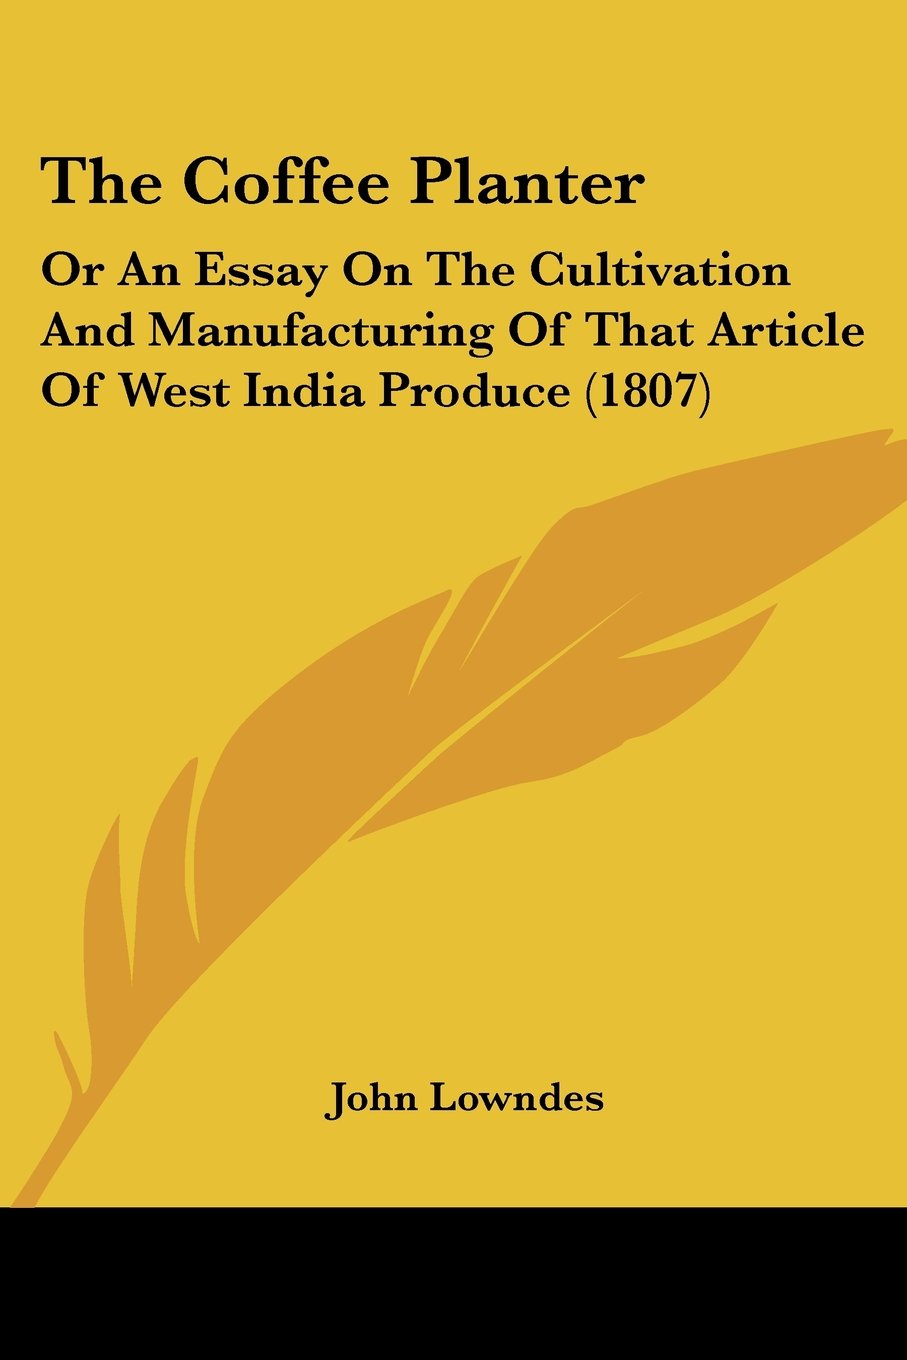 The Coffee Planter: Or An Essay On The Cultivation And Manufacturing Of That Article Of West India Produce (1807) pdf epub